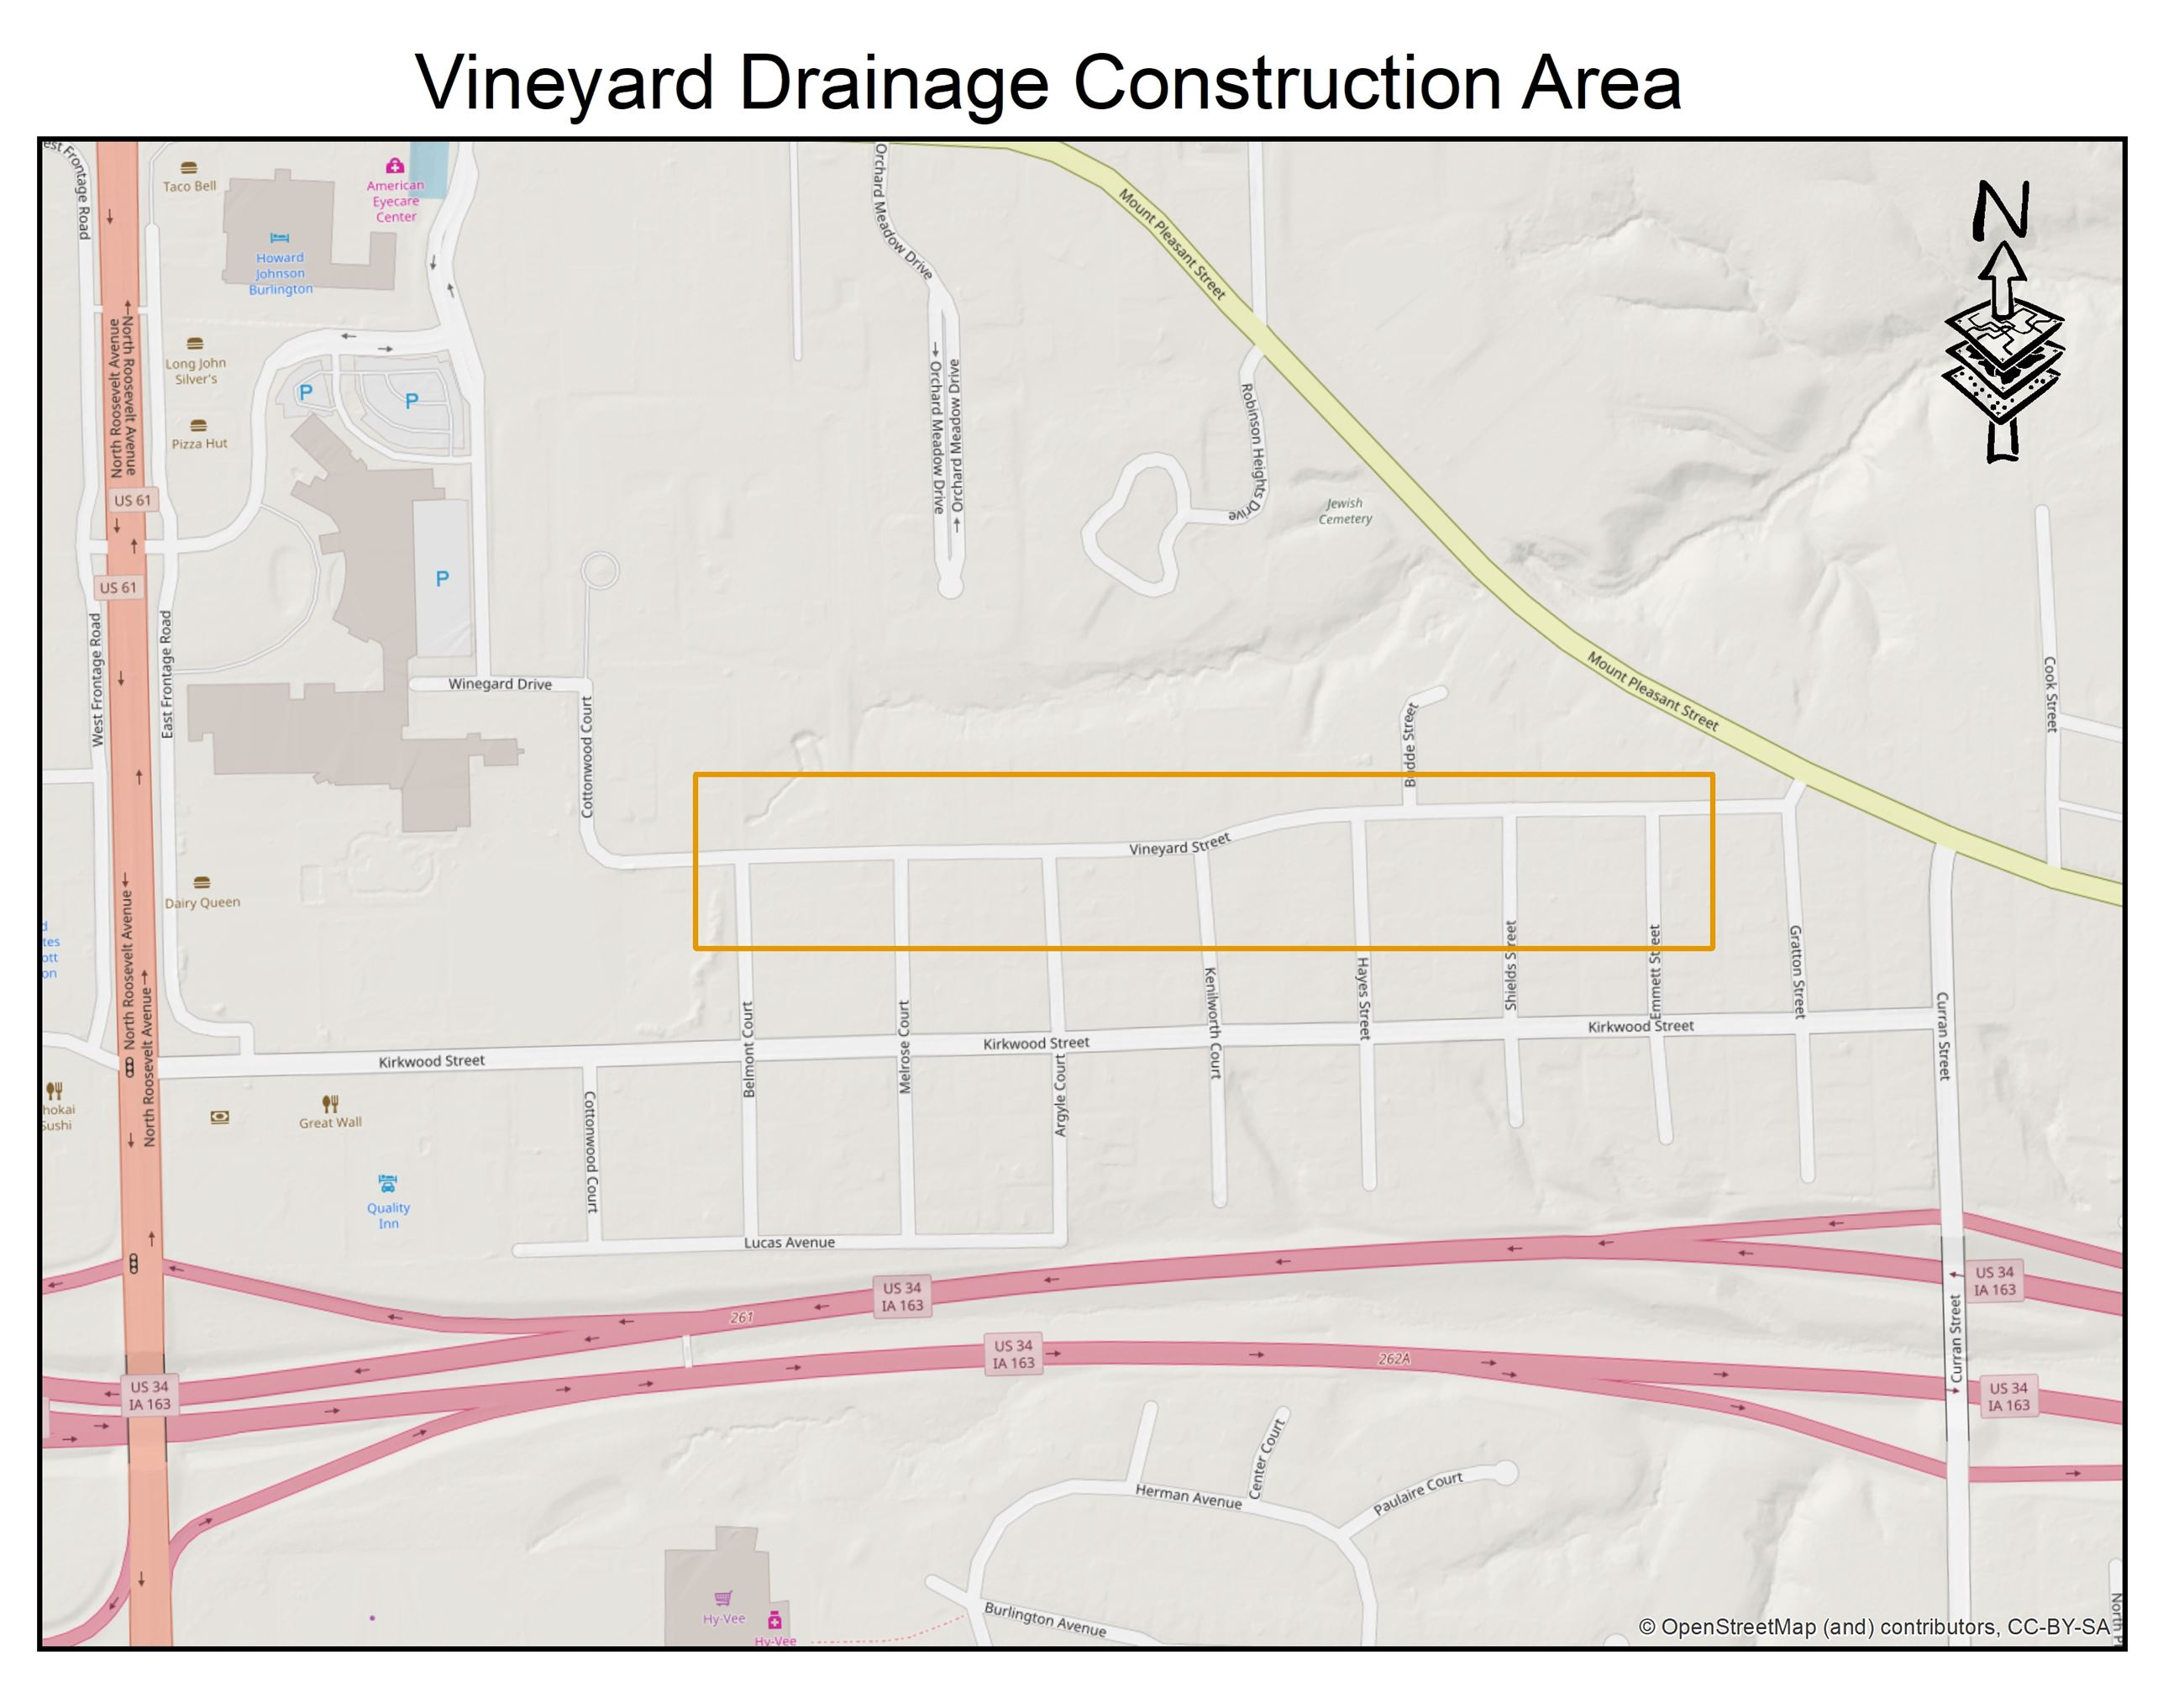 Vineyard Drainage Project